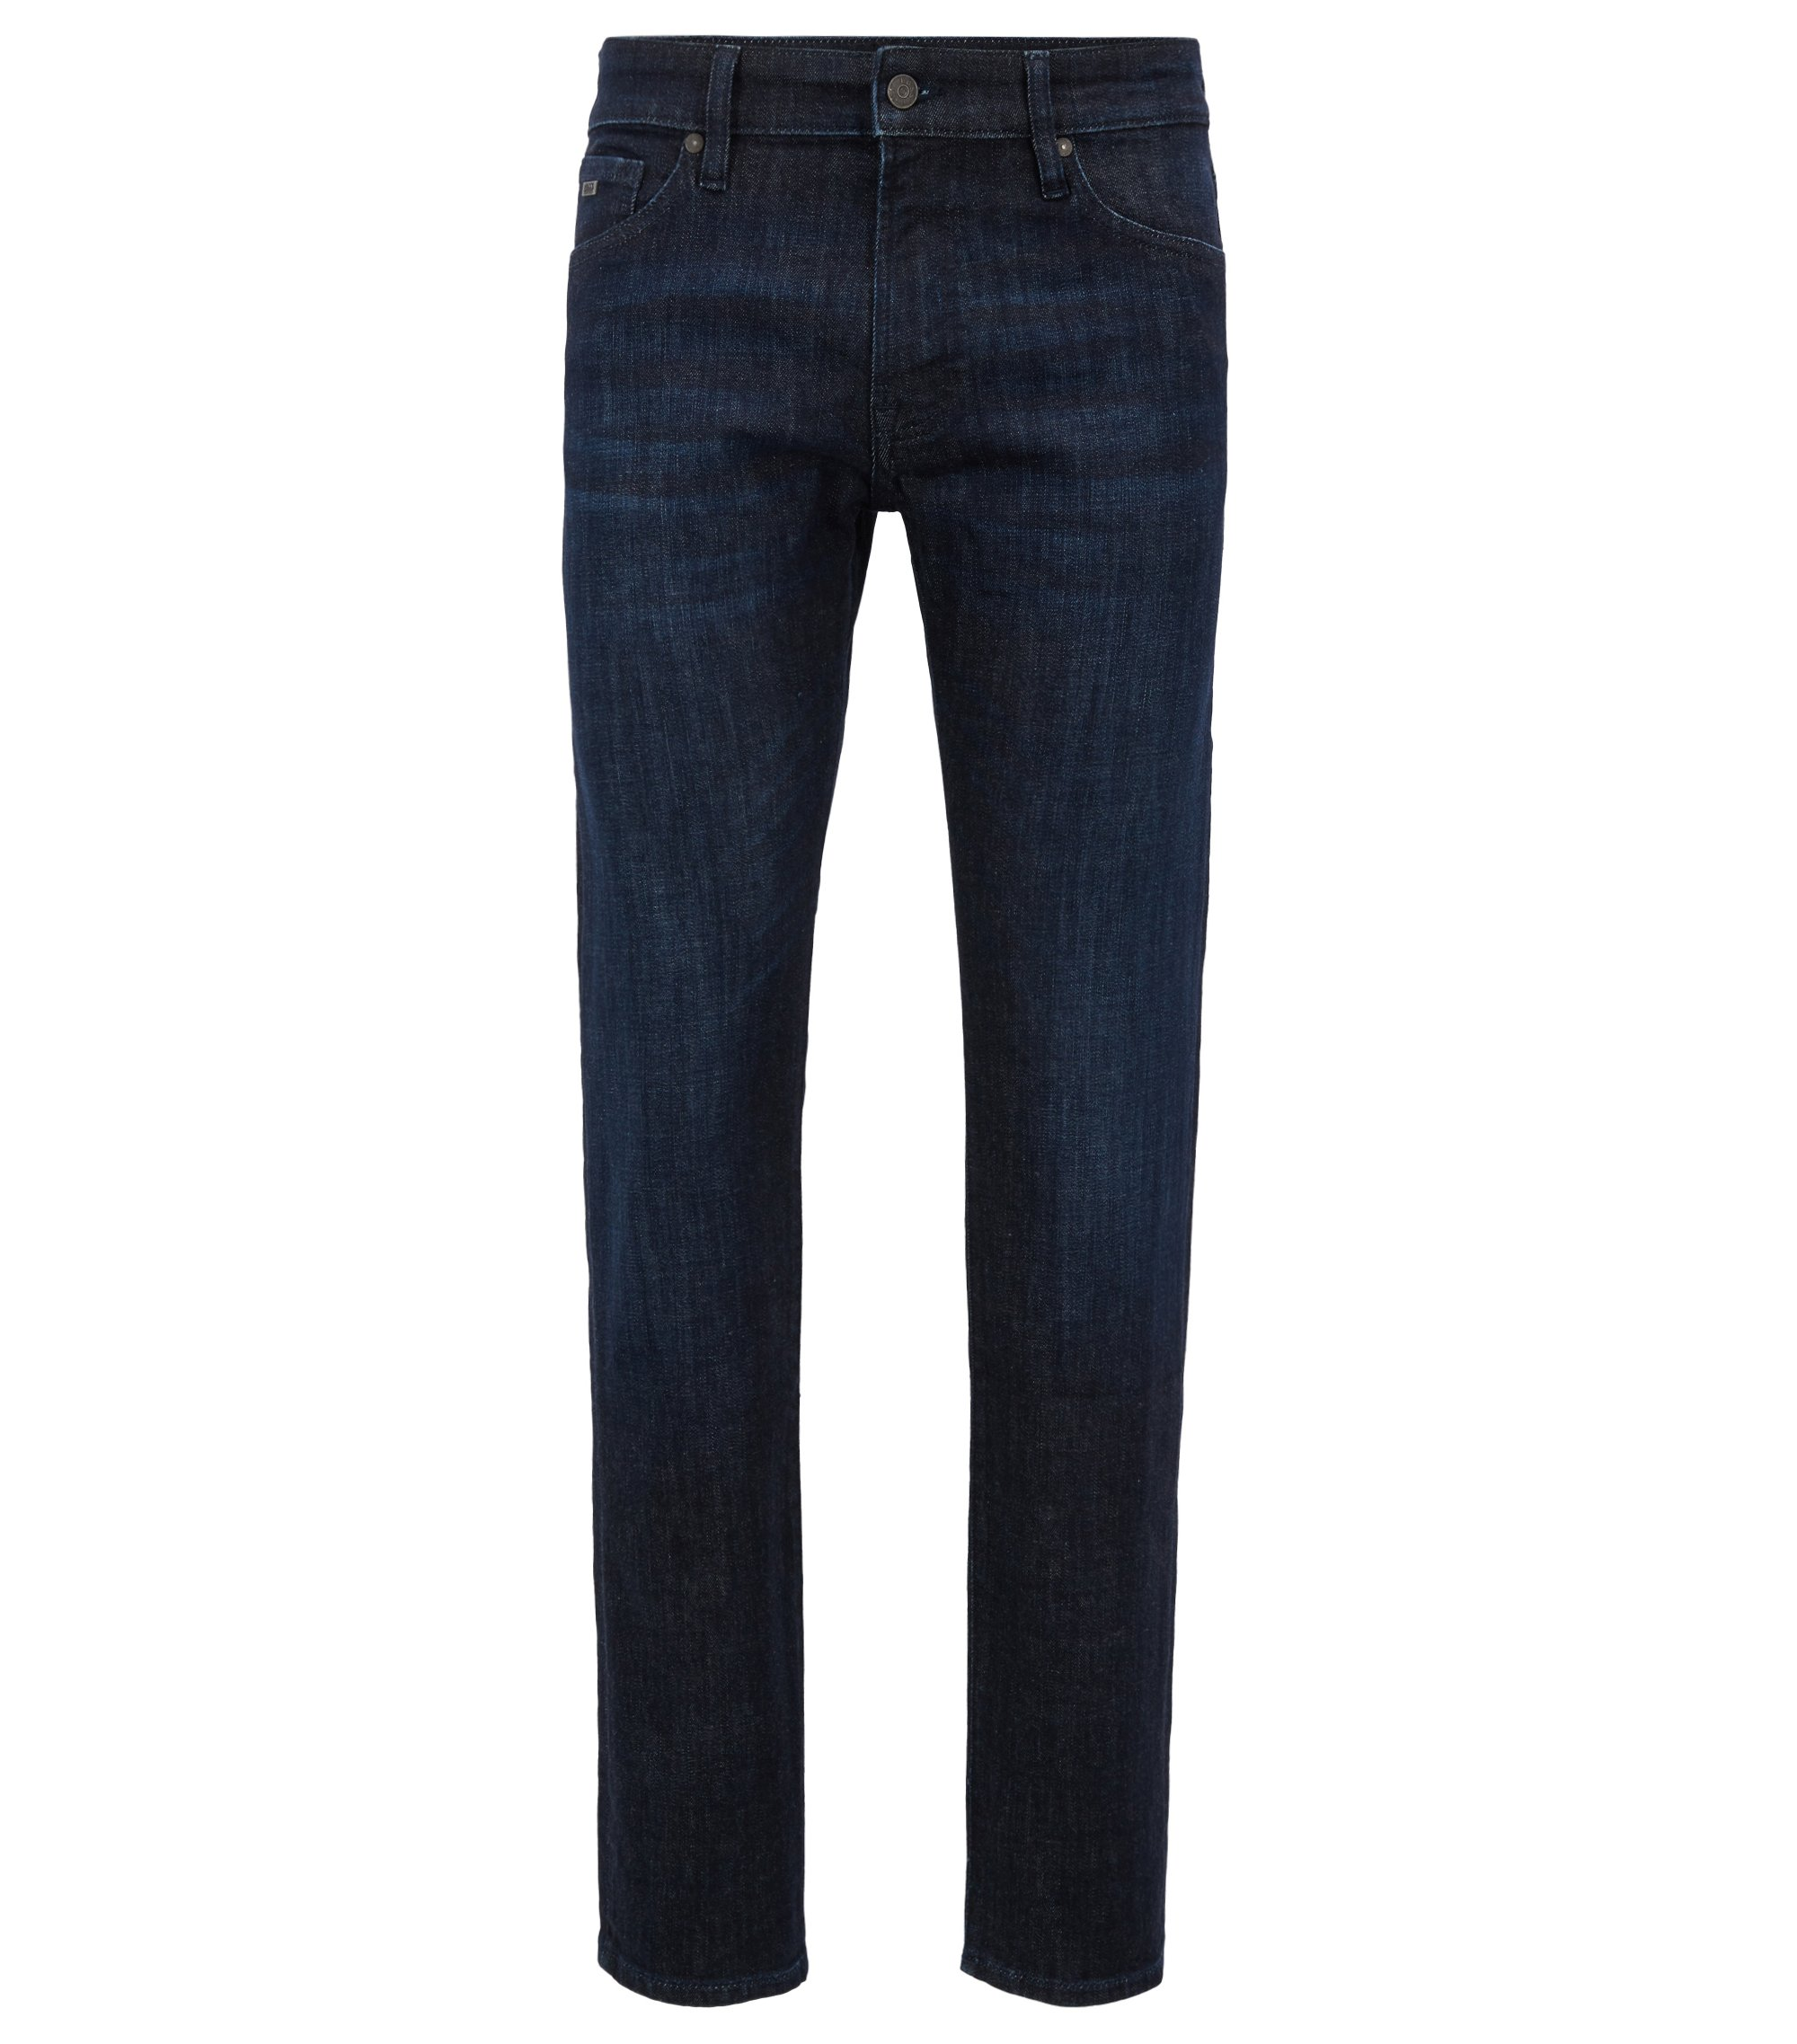 Jeans regular fit in denim elasticizzato con cimosa, Blu scuro